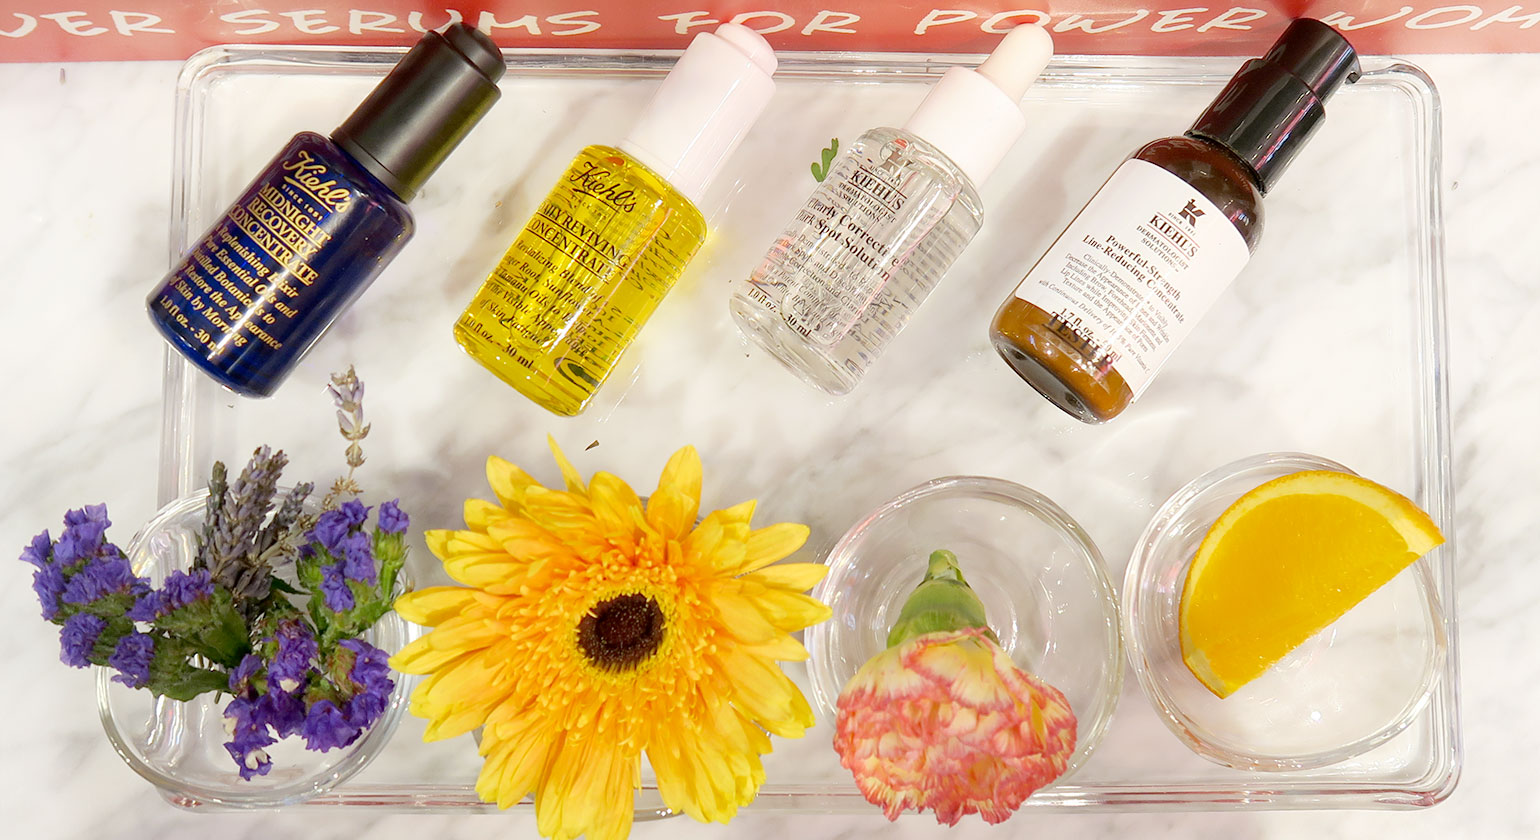 14 Kiehl's Store of the Future - Power Serums - Midnight Recovery - She Sings Beauty by Gen-zel